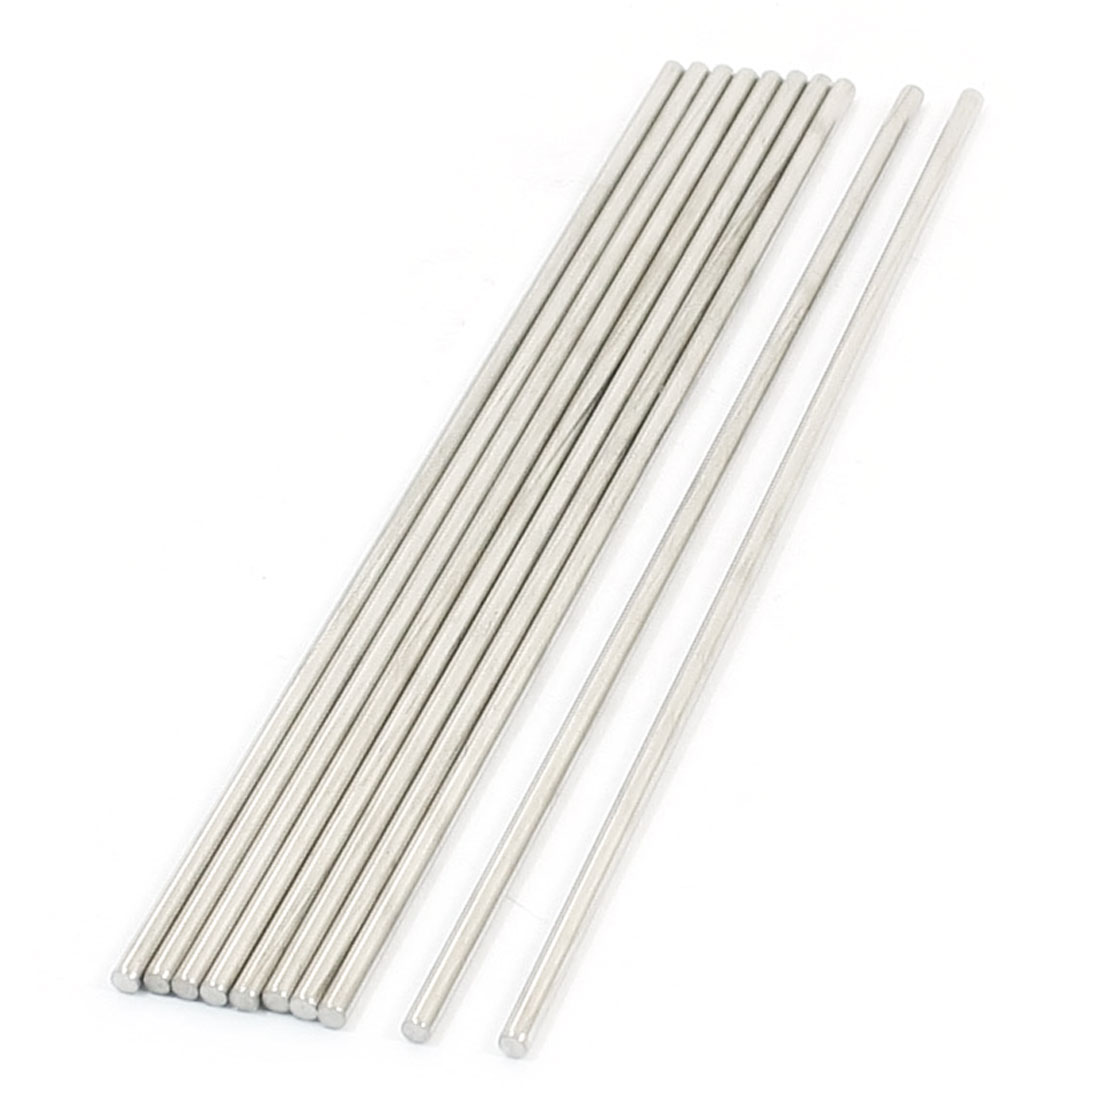 10pcs Stainless Steel 130 x 2.5mm Round Rod Shafts for RC Model